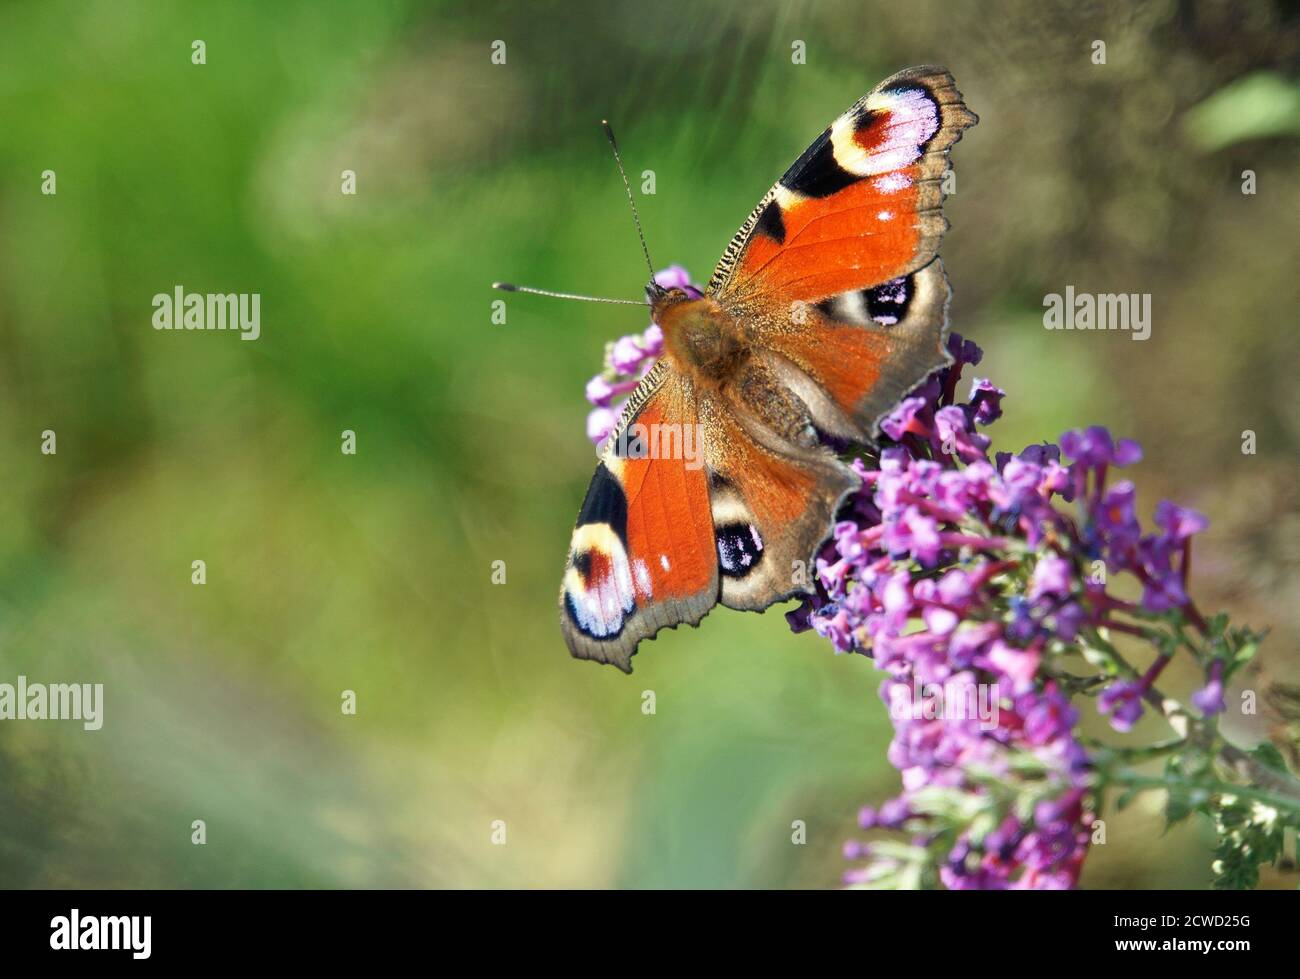 Bright, beautiful butterfly with eyes on the wings on a purple flower. The butterfly is a Peacock butterfly. The flower is part of a Butterfly bush. Stock Photo